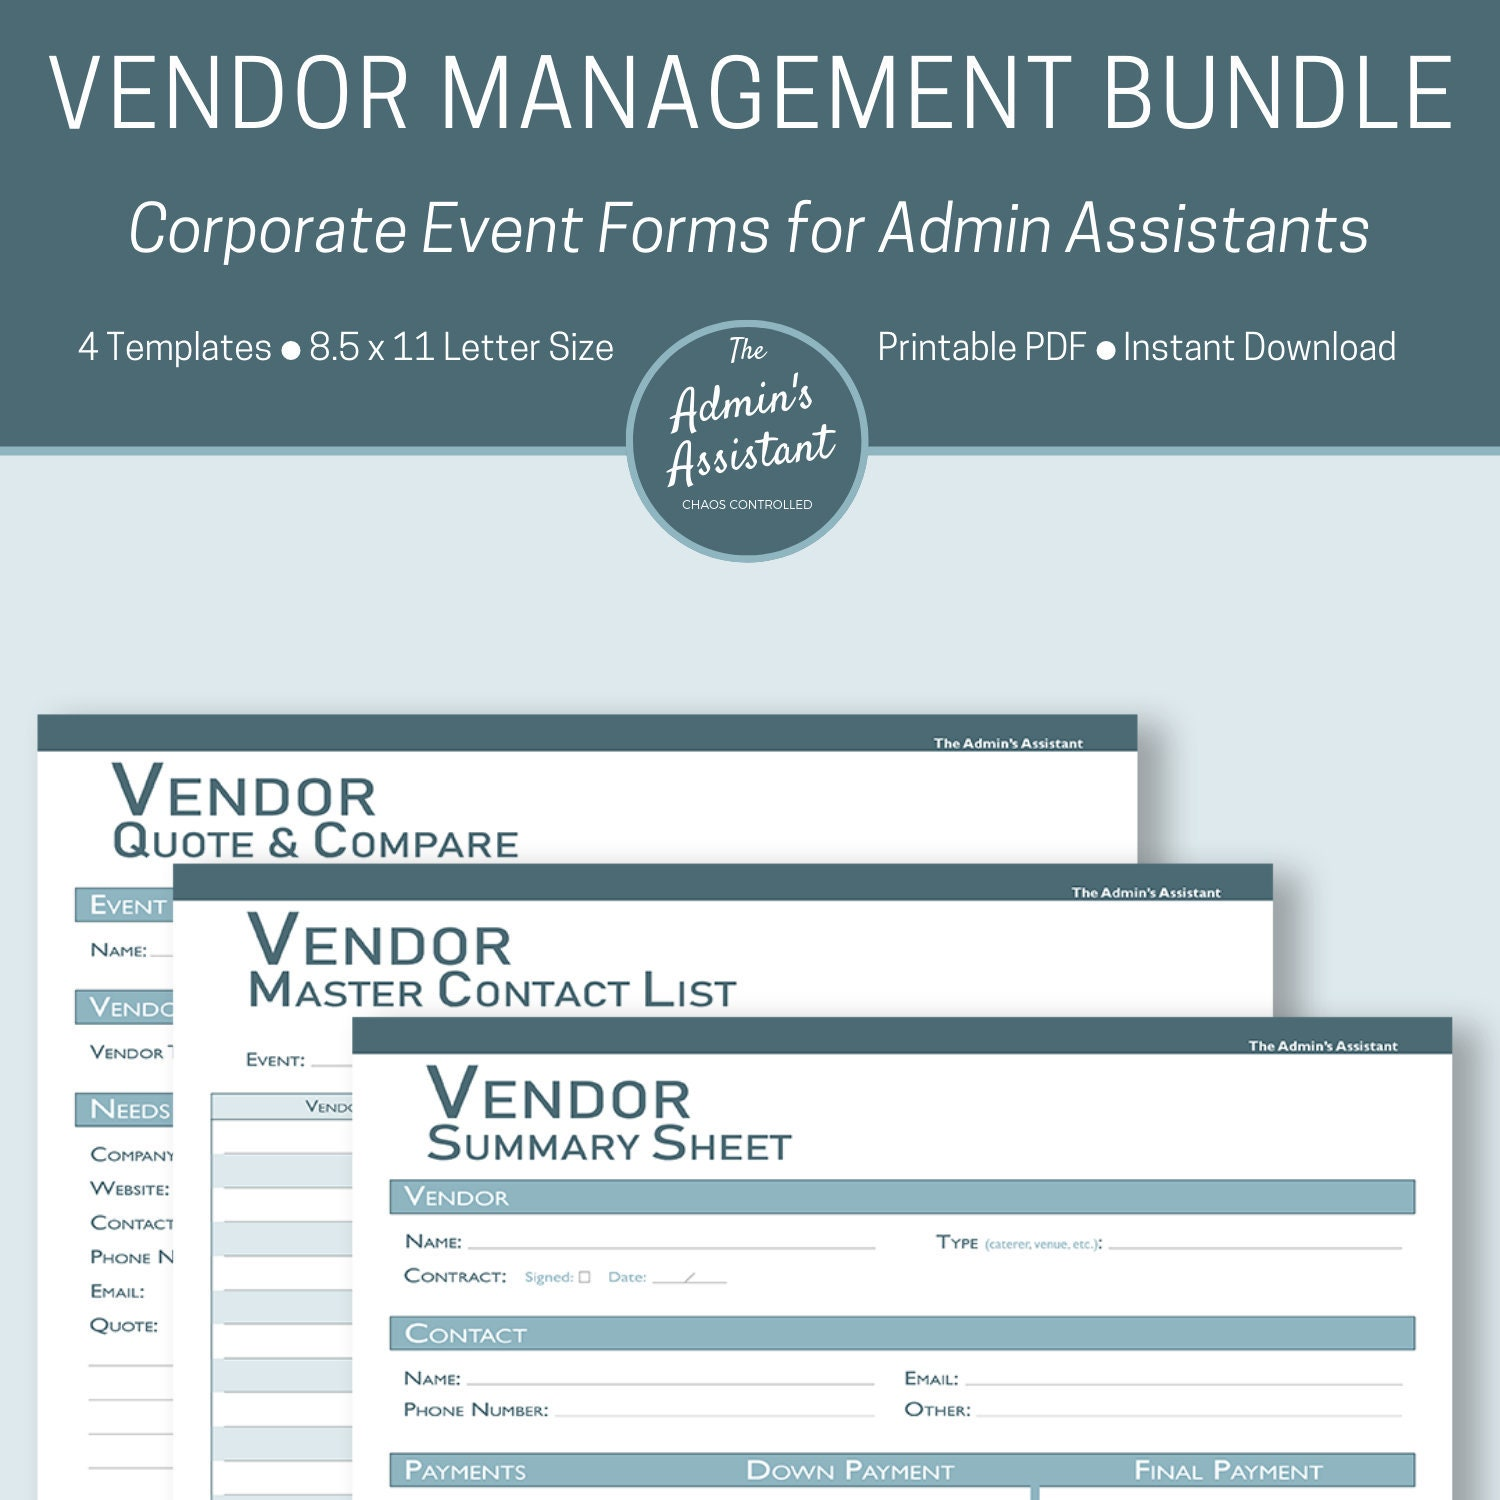 Vendor Management | Corporate Event | Meeting Planner | Event Planner on colors of letters, small printable alphabet letters, stack of letters, formats of letters, graphics of letters, types of letters, forms of letters, ideas of letters, simple examples of letters, printables of letters, art of letters, shapes of letters, fonts of letters, features of letters, backgrounds of letters, samples of letters, printable alphabet templates lower case letters, tips of letters, layout of letters, design of letters,